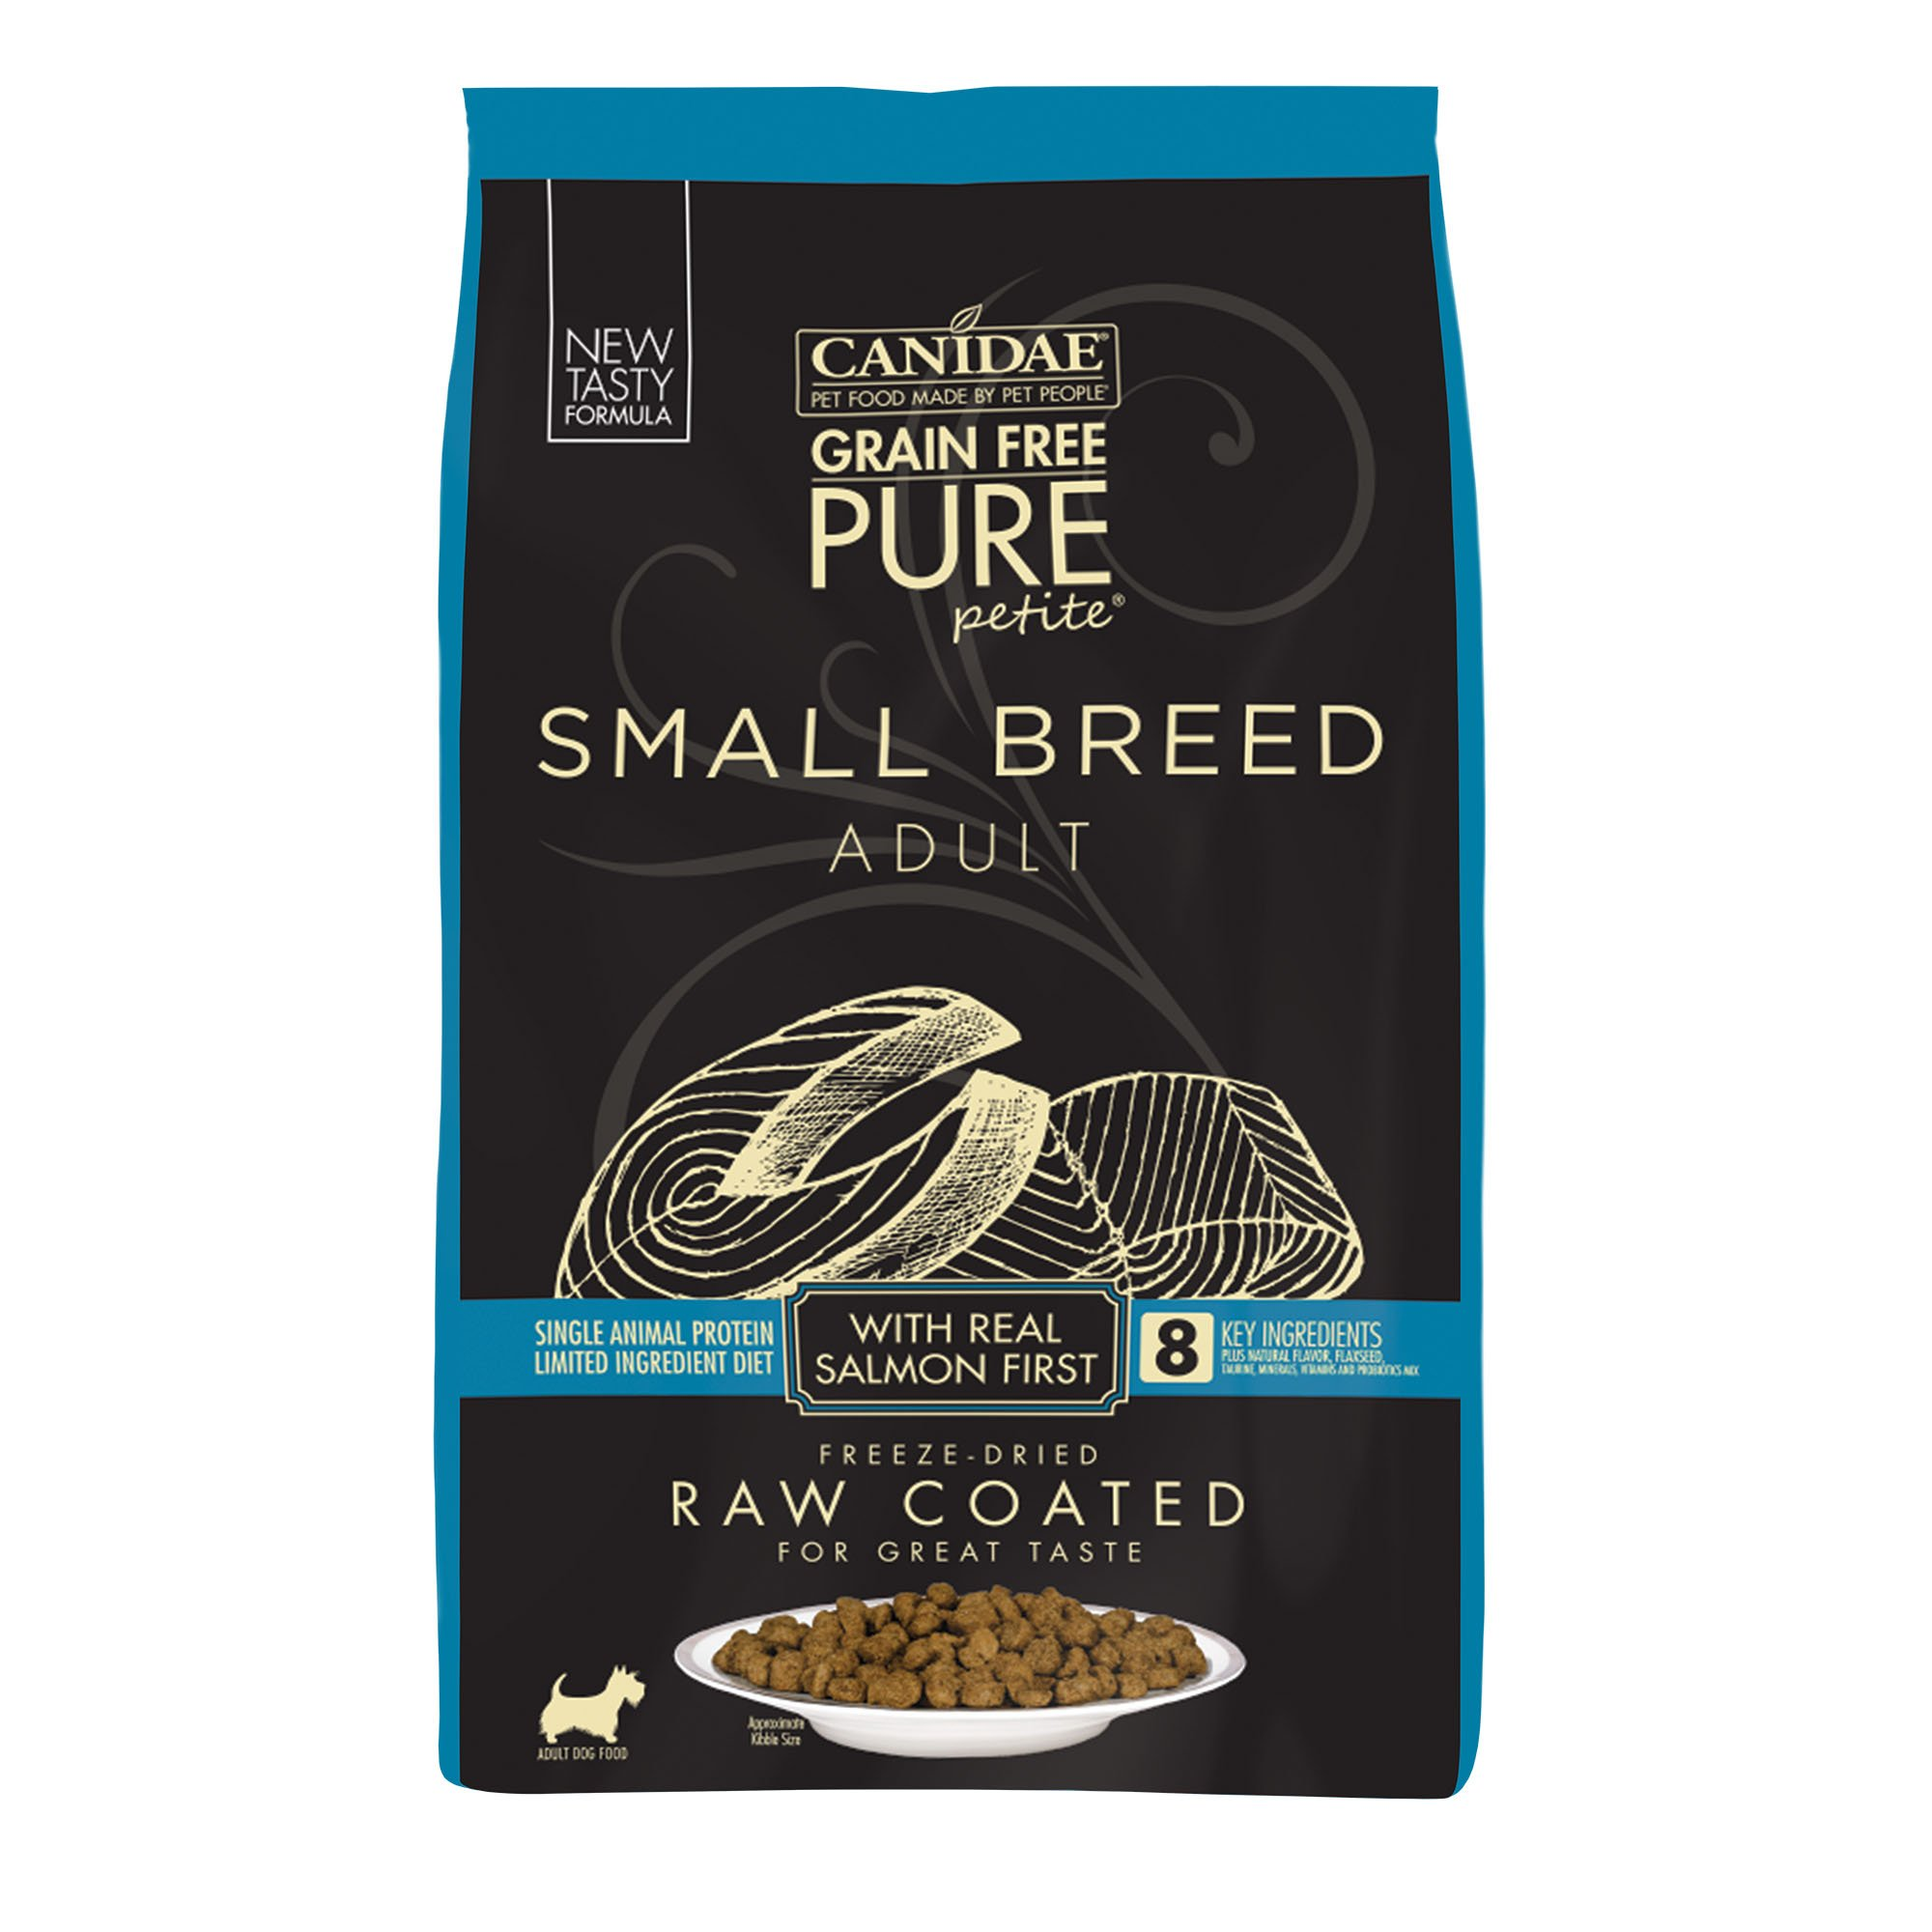 CANIDAE PURE Petite Small Breed Adult Raw Coated with Fresh Salmon Dry Dog Food, 10 lbs.